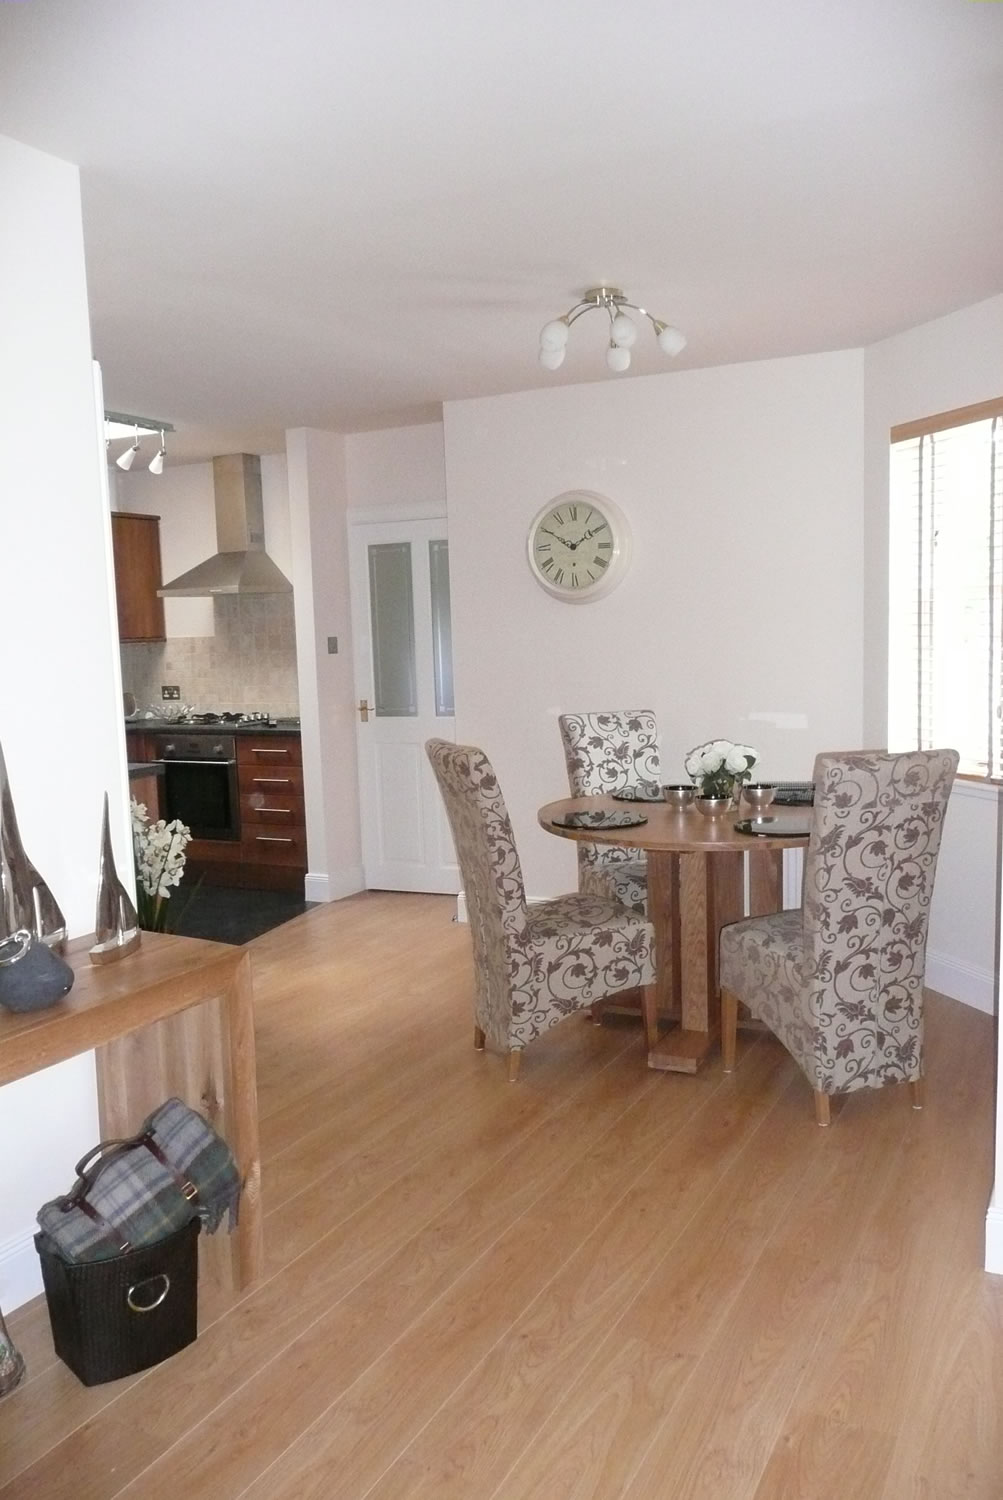 Self catering holiday let near st andrews